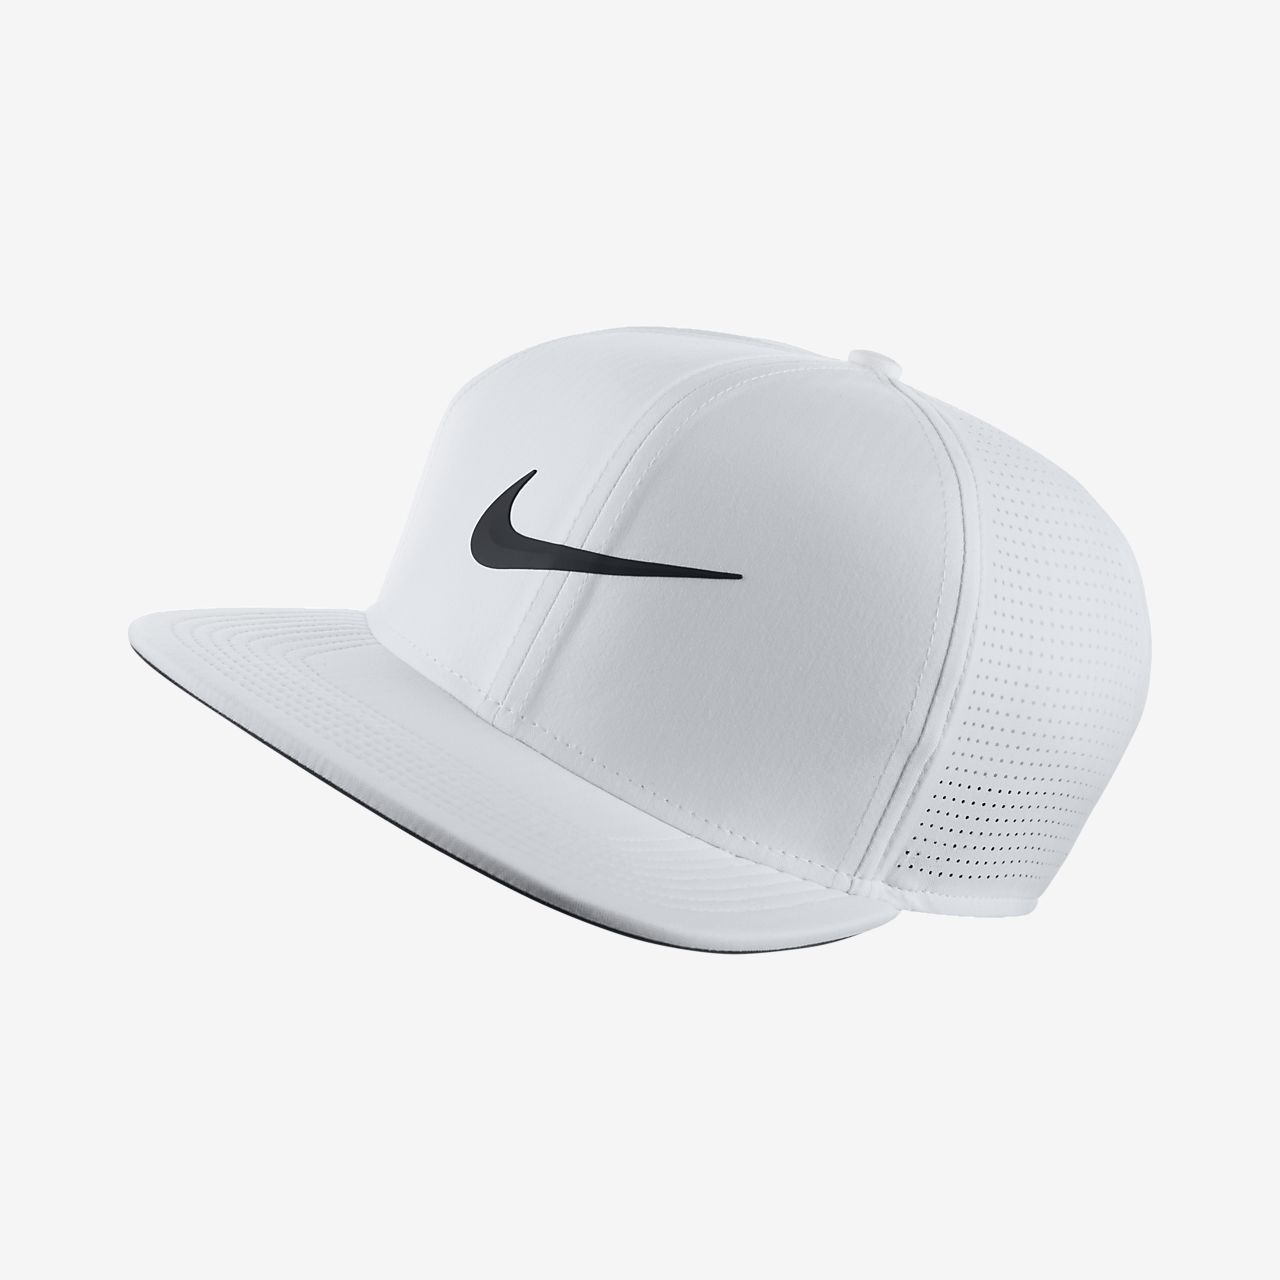 0954b5bf6c0 Nike AeroBill Adjustable Golf Hat. Nike.com